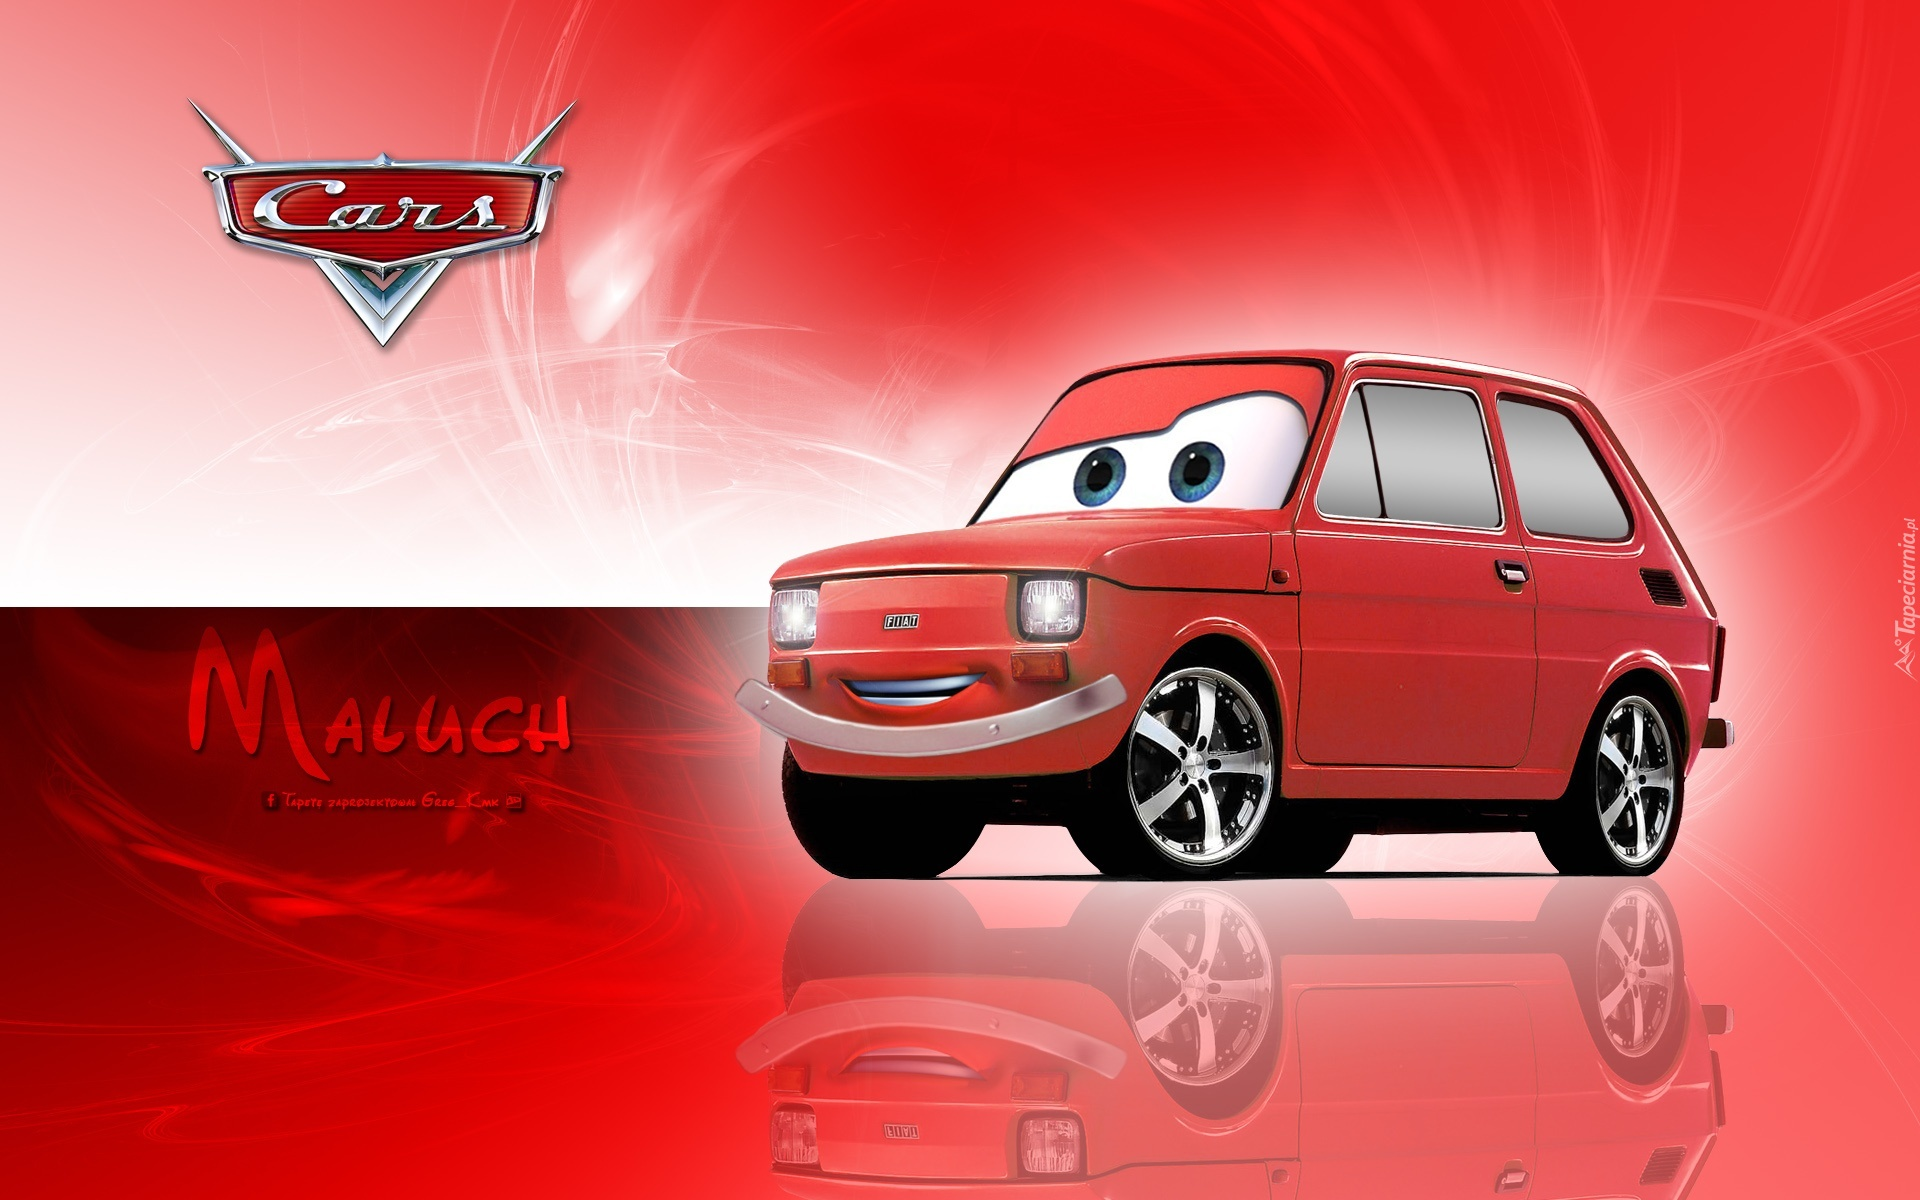 Disney Cars 2 Wallpaper Auta Fiat 126p Maluch Disney Pixar